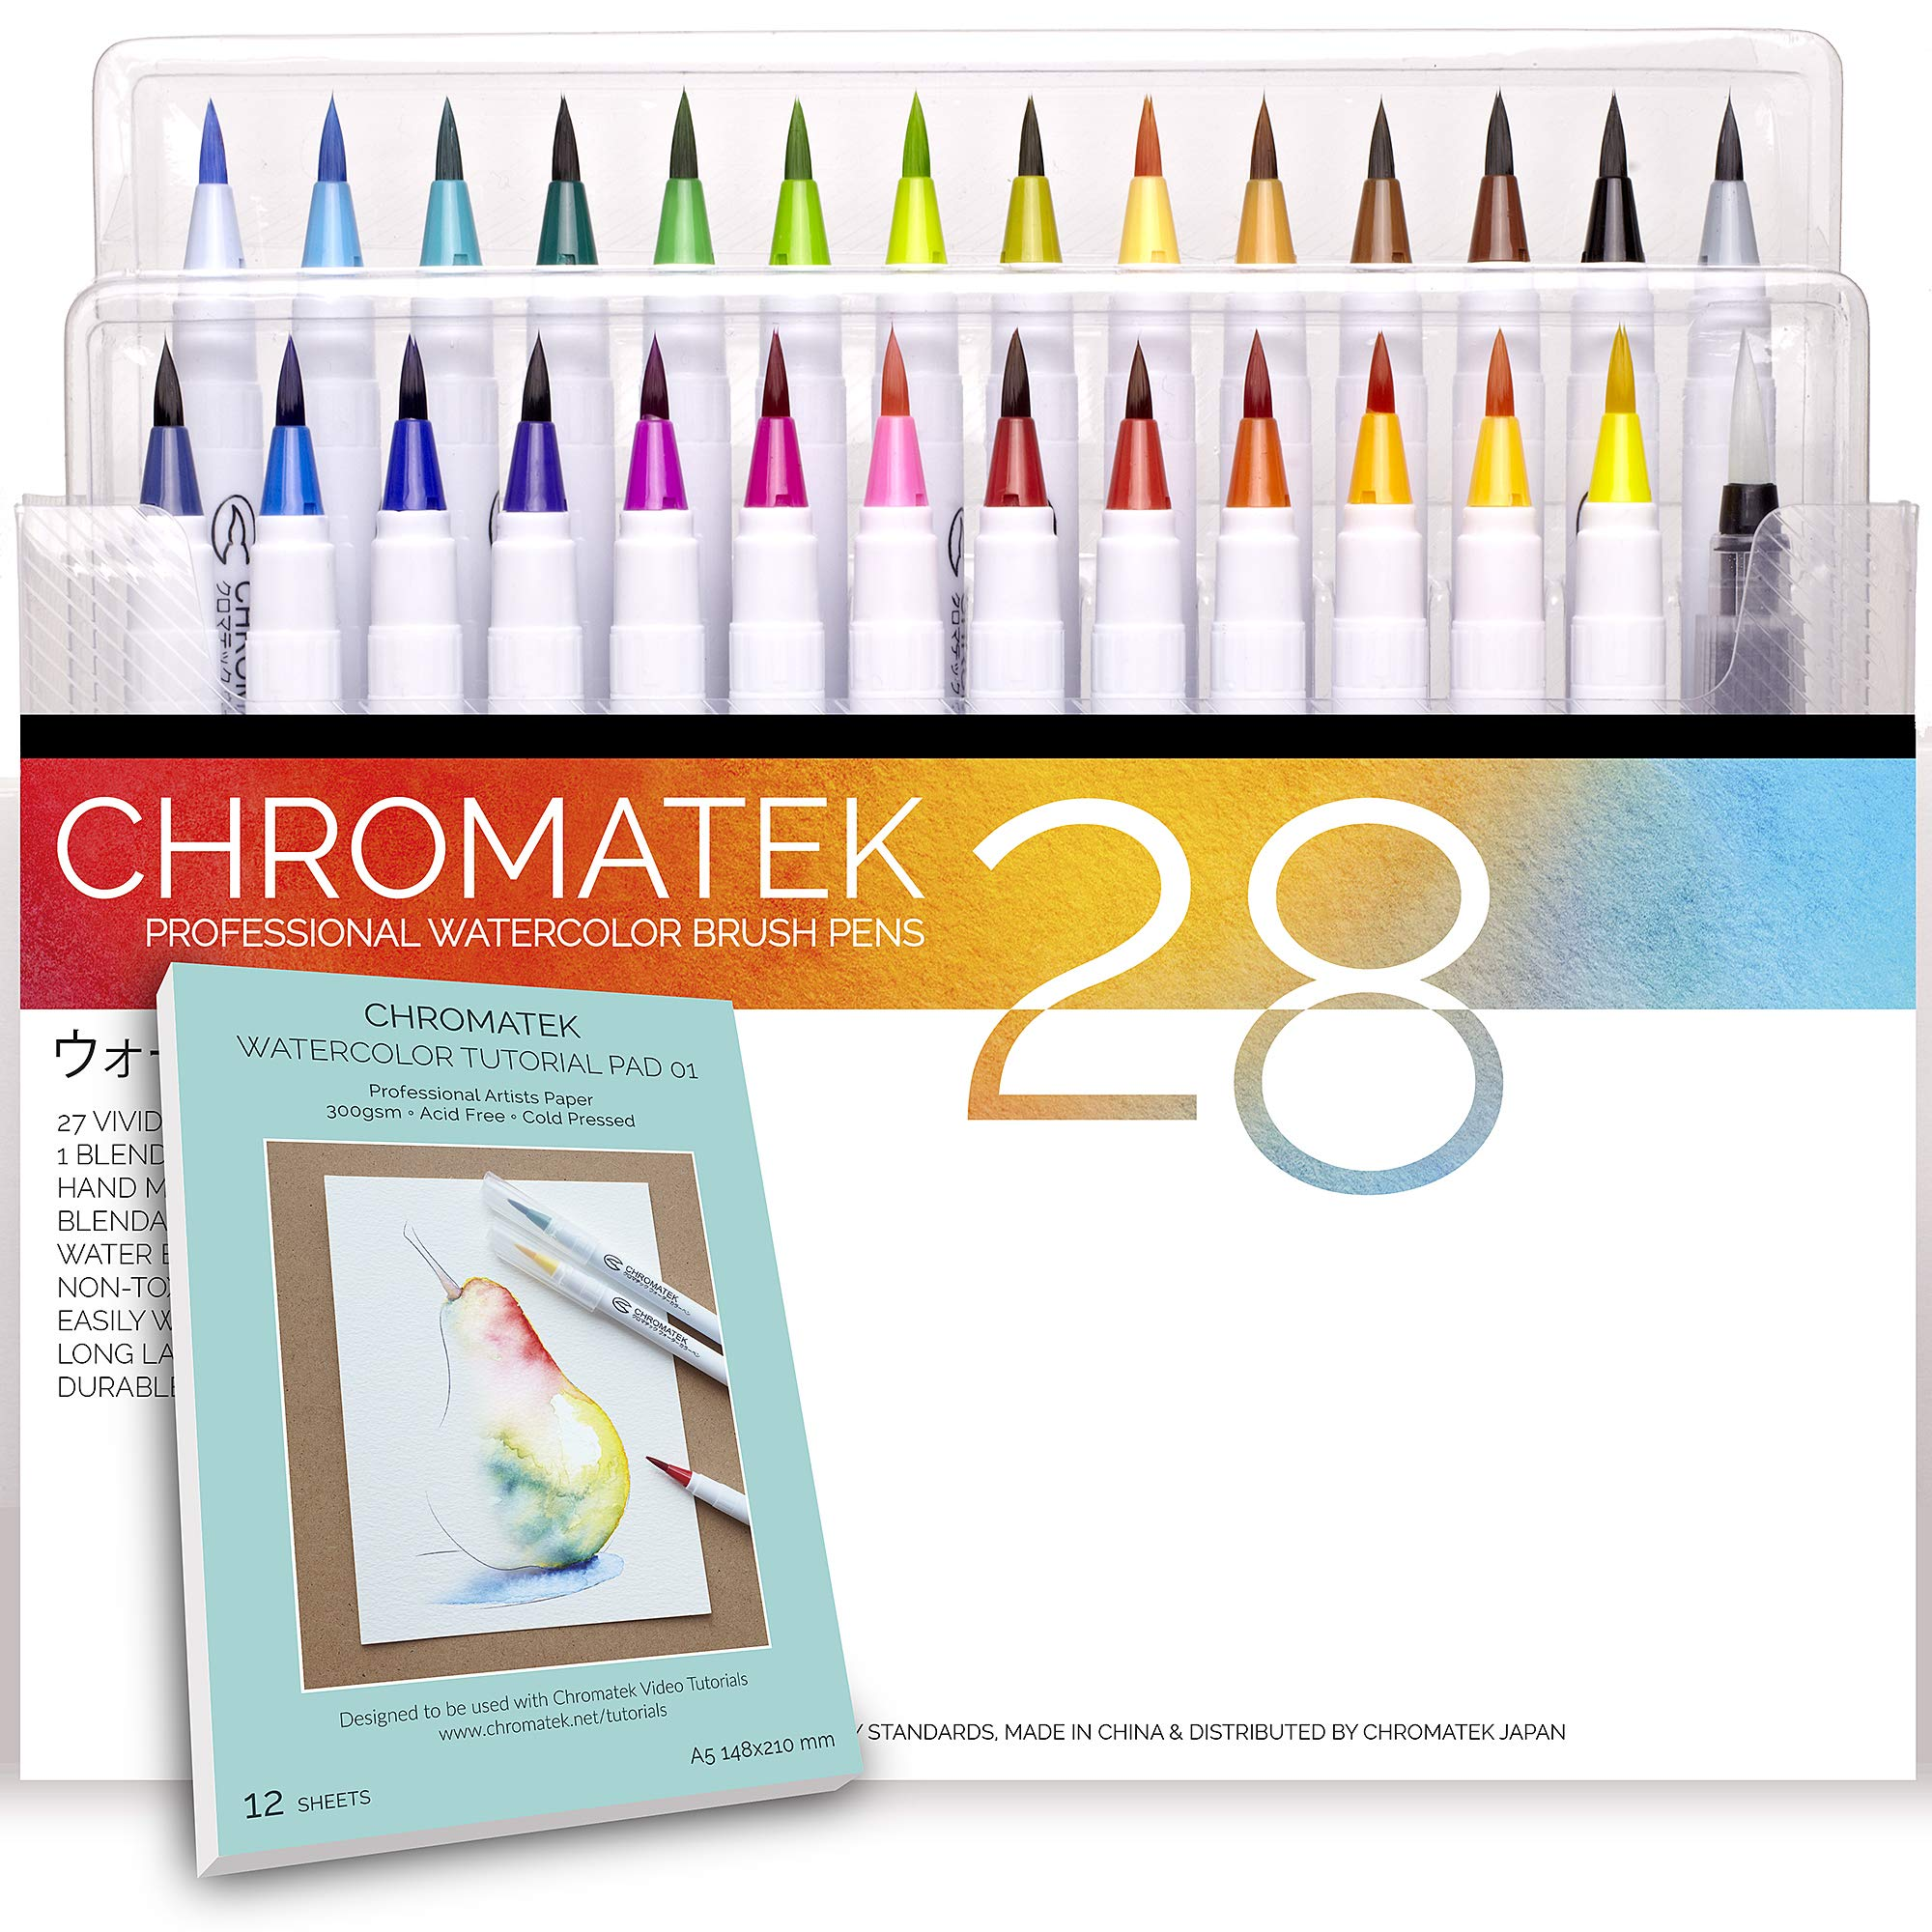 28 Watercolor Brush Pens, Tutorial Pad and Online Video Series by Chromatek. Real Brush Tip. Vivid. Smooth. Blendable. Long Lasting. Professional Artist Quality. 27 Colors 1 Blending Brush. ... by Chromatek